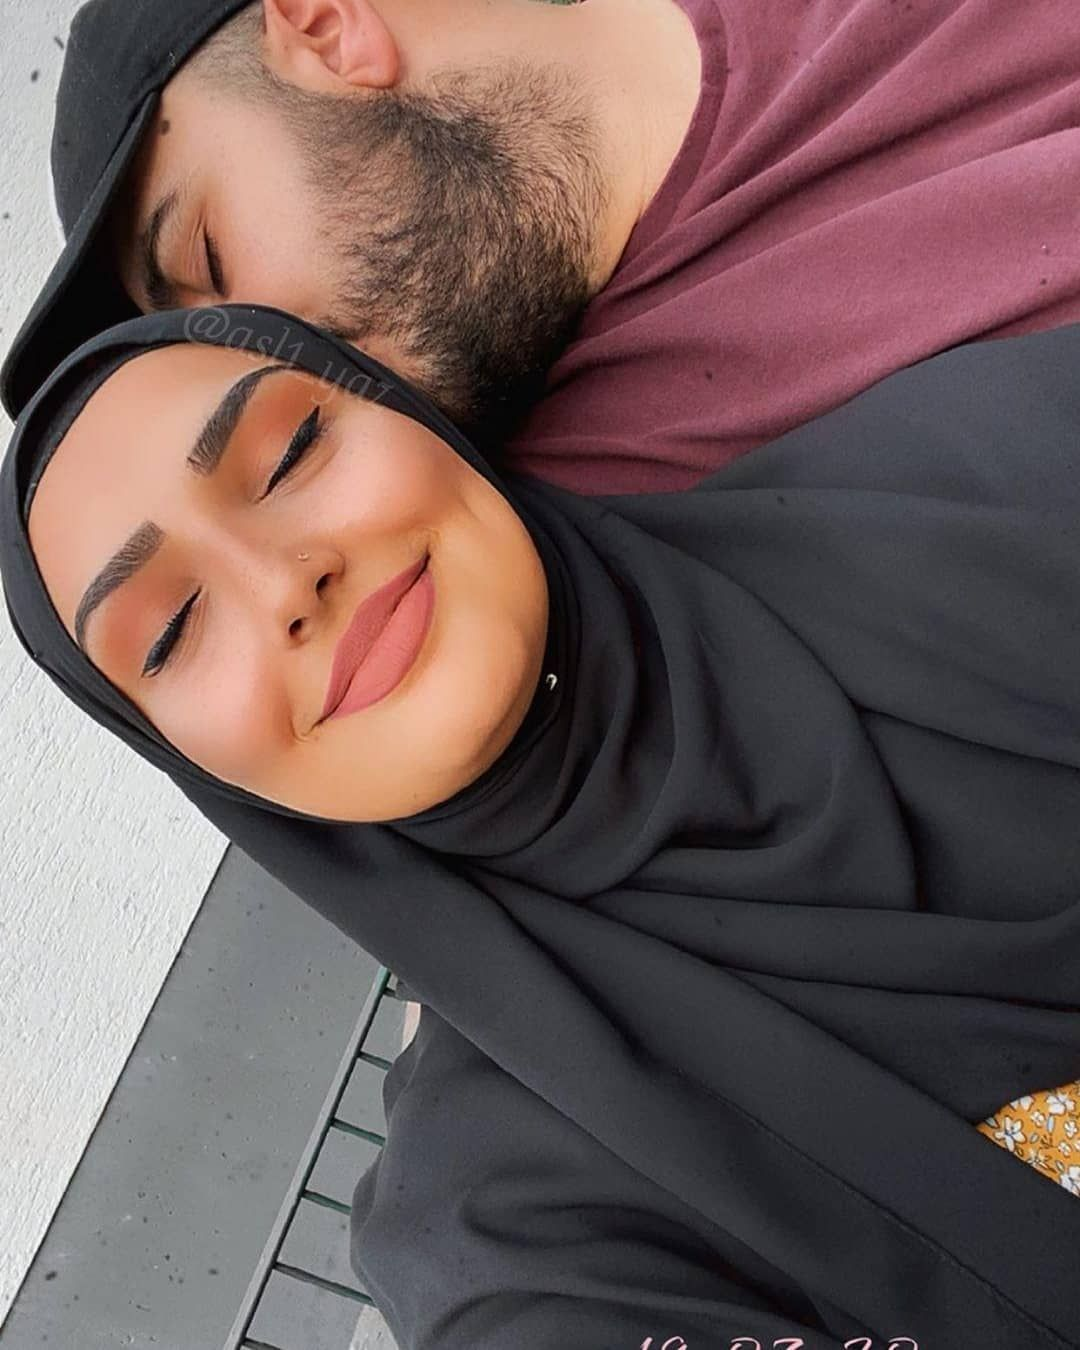 Hijab Muslim Couples On Instagram Asl1 Yaz Asl1 Yaz Hijabmuslim Beautiful Couple Muslim Couples Cute Couples Couples